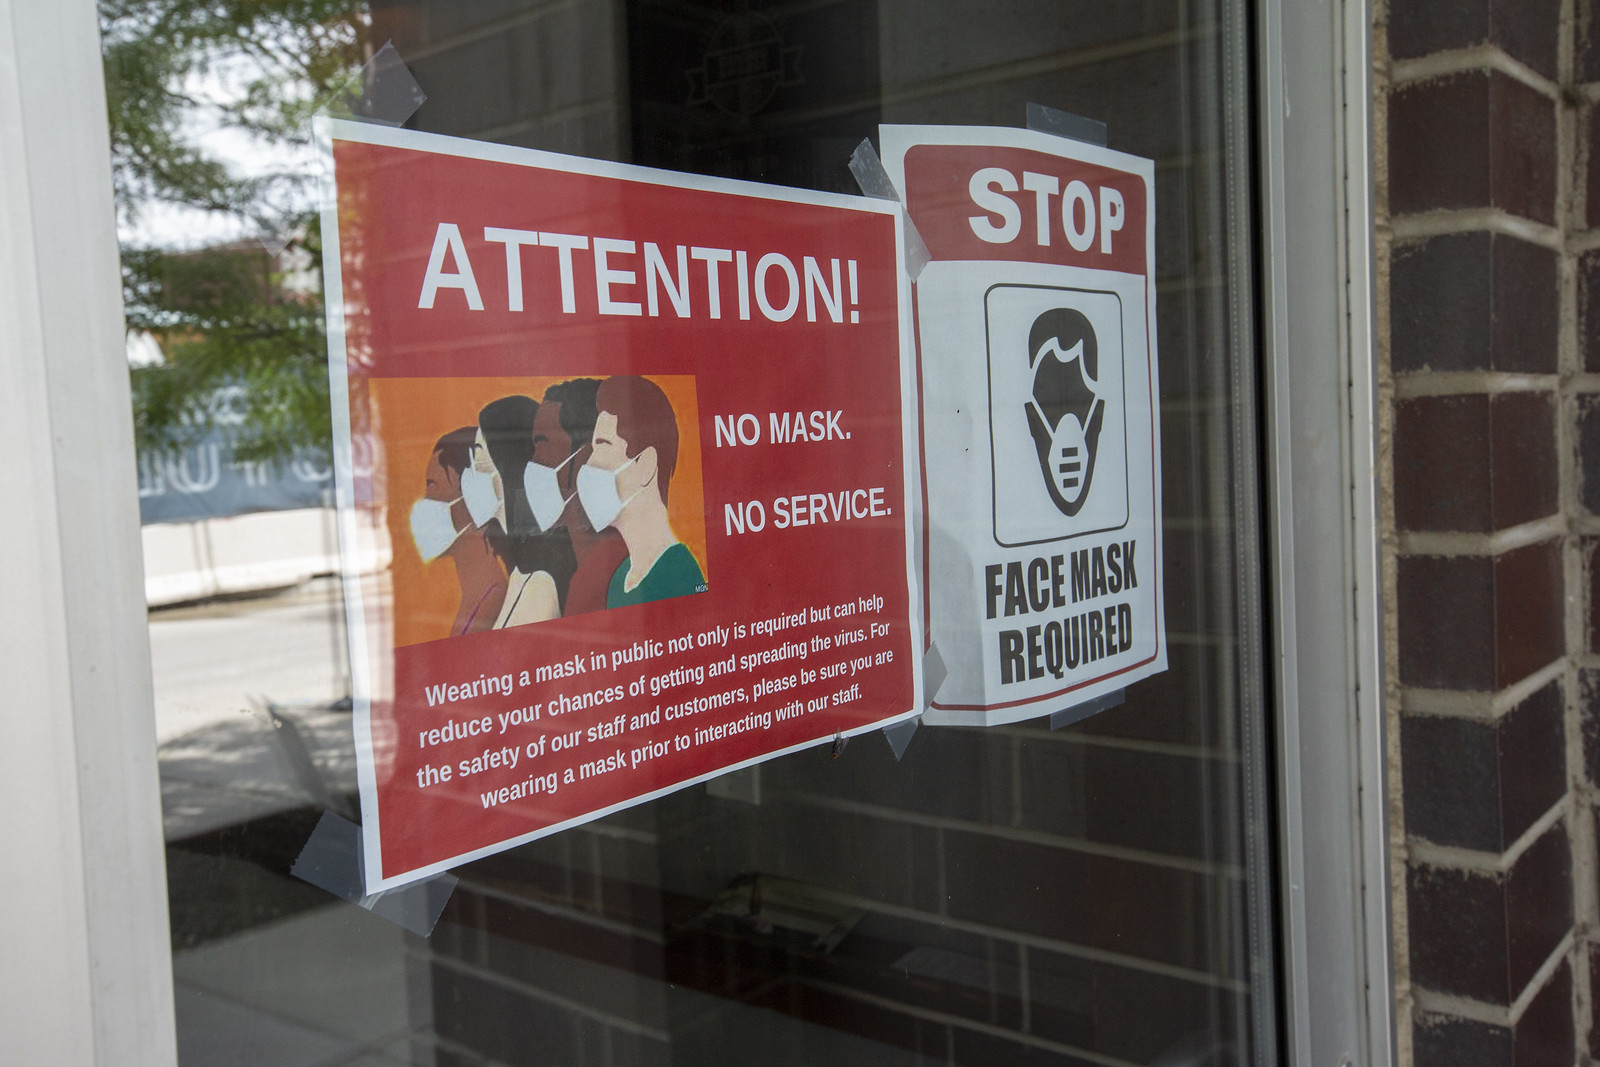 A sign telling folks to wear face masks to avoid getting sick.